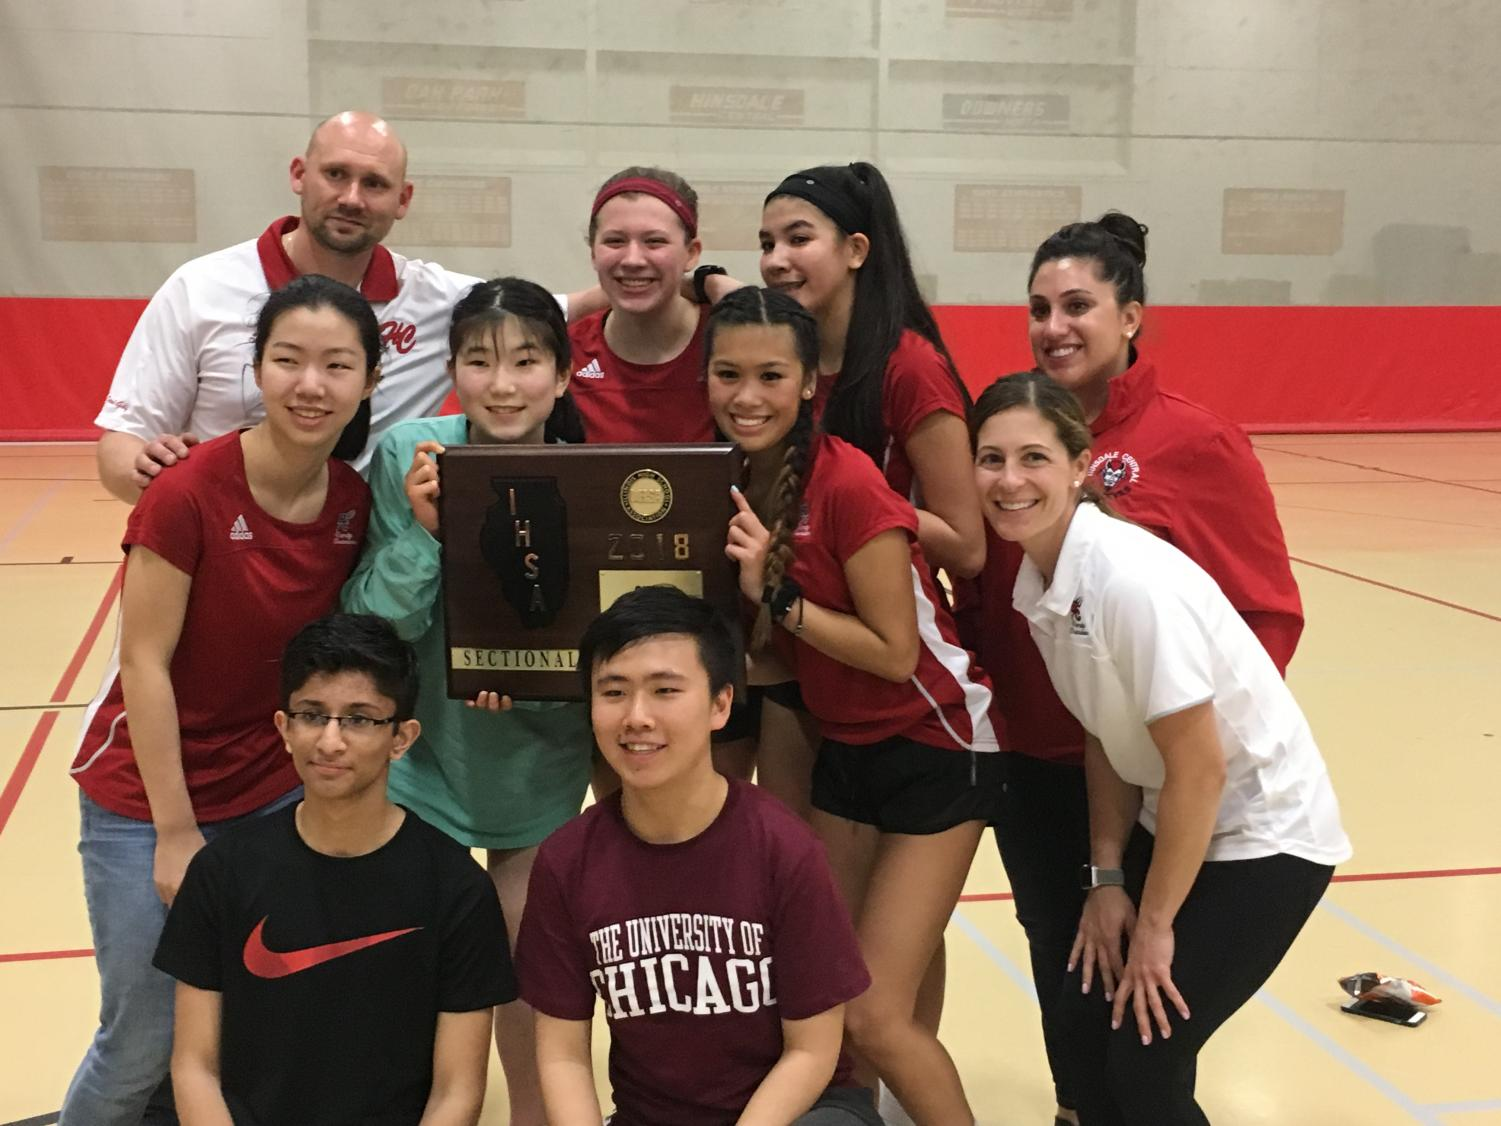 The girls varsity badminton team placed first in their sectional meet on Thursday, May 3, advancing them to the state competition.